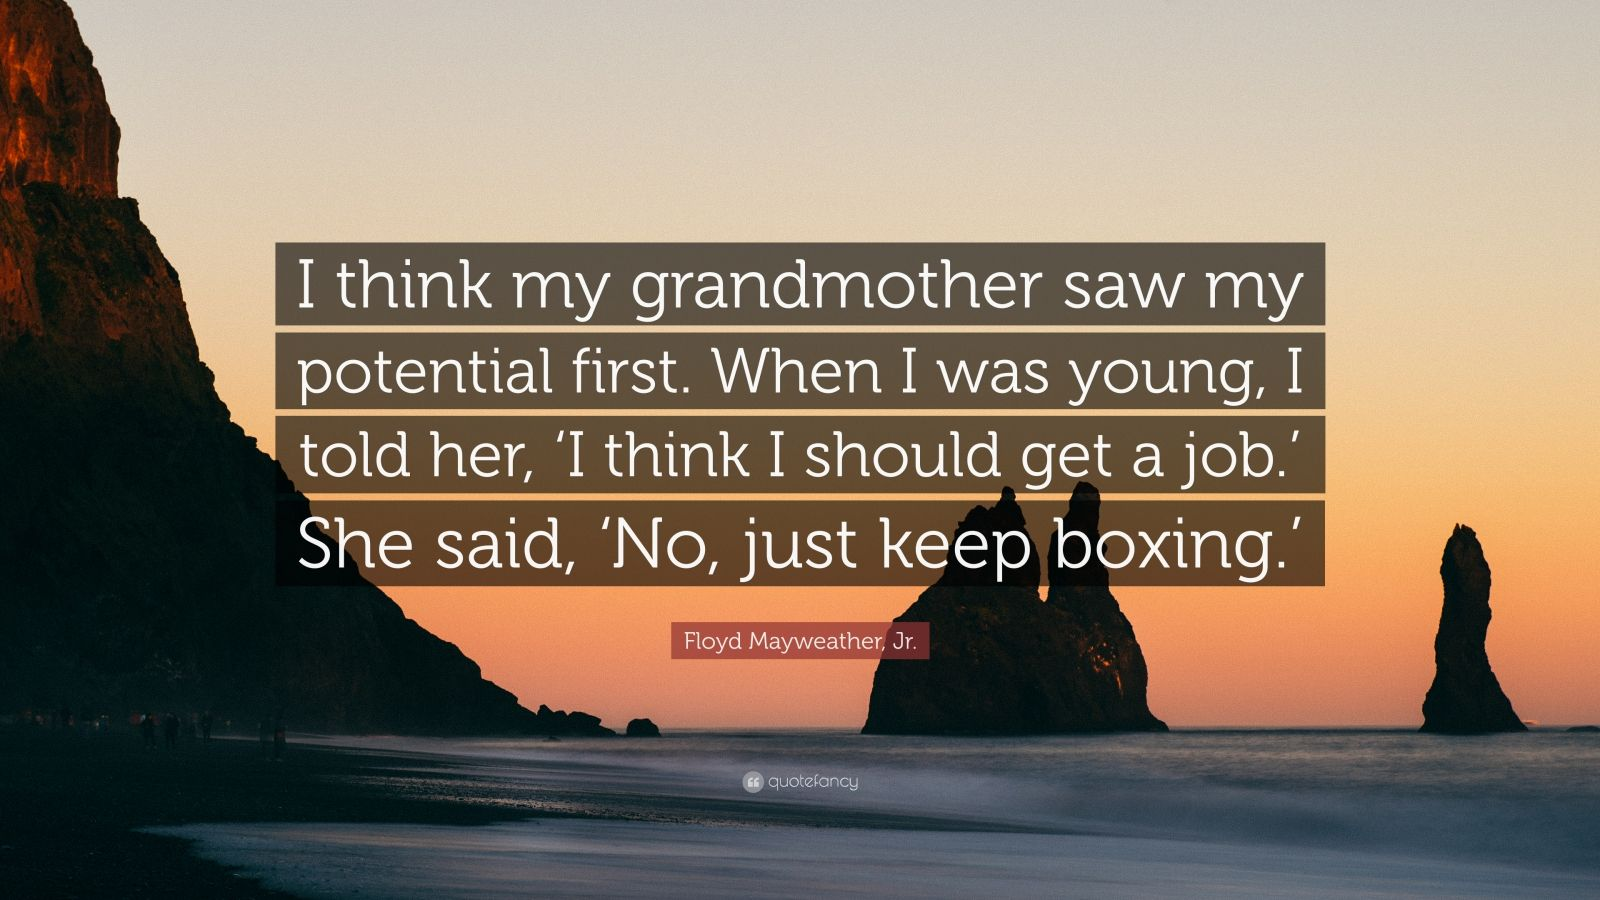 "Floyd Mayweather, Jr. Quote: ""I think my grandmother saw my potential first. When I was young, I told her, 'I think I should get a job.' She said, 'No, just keep boxing.'"""